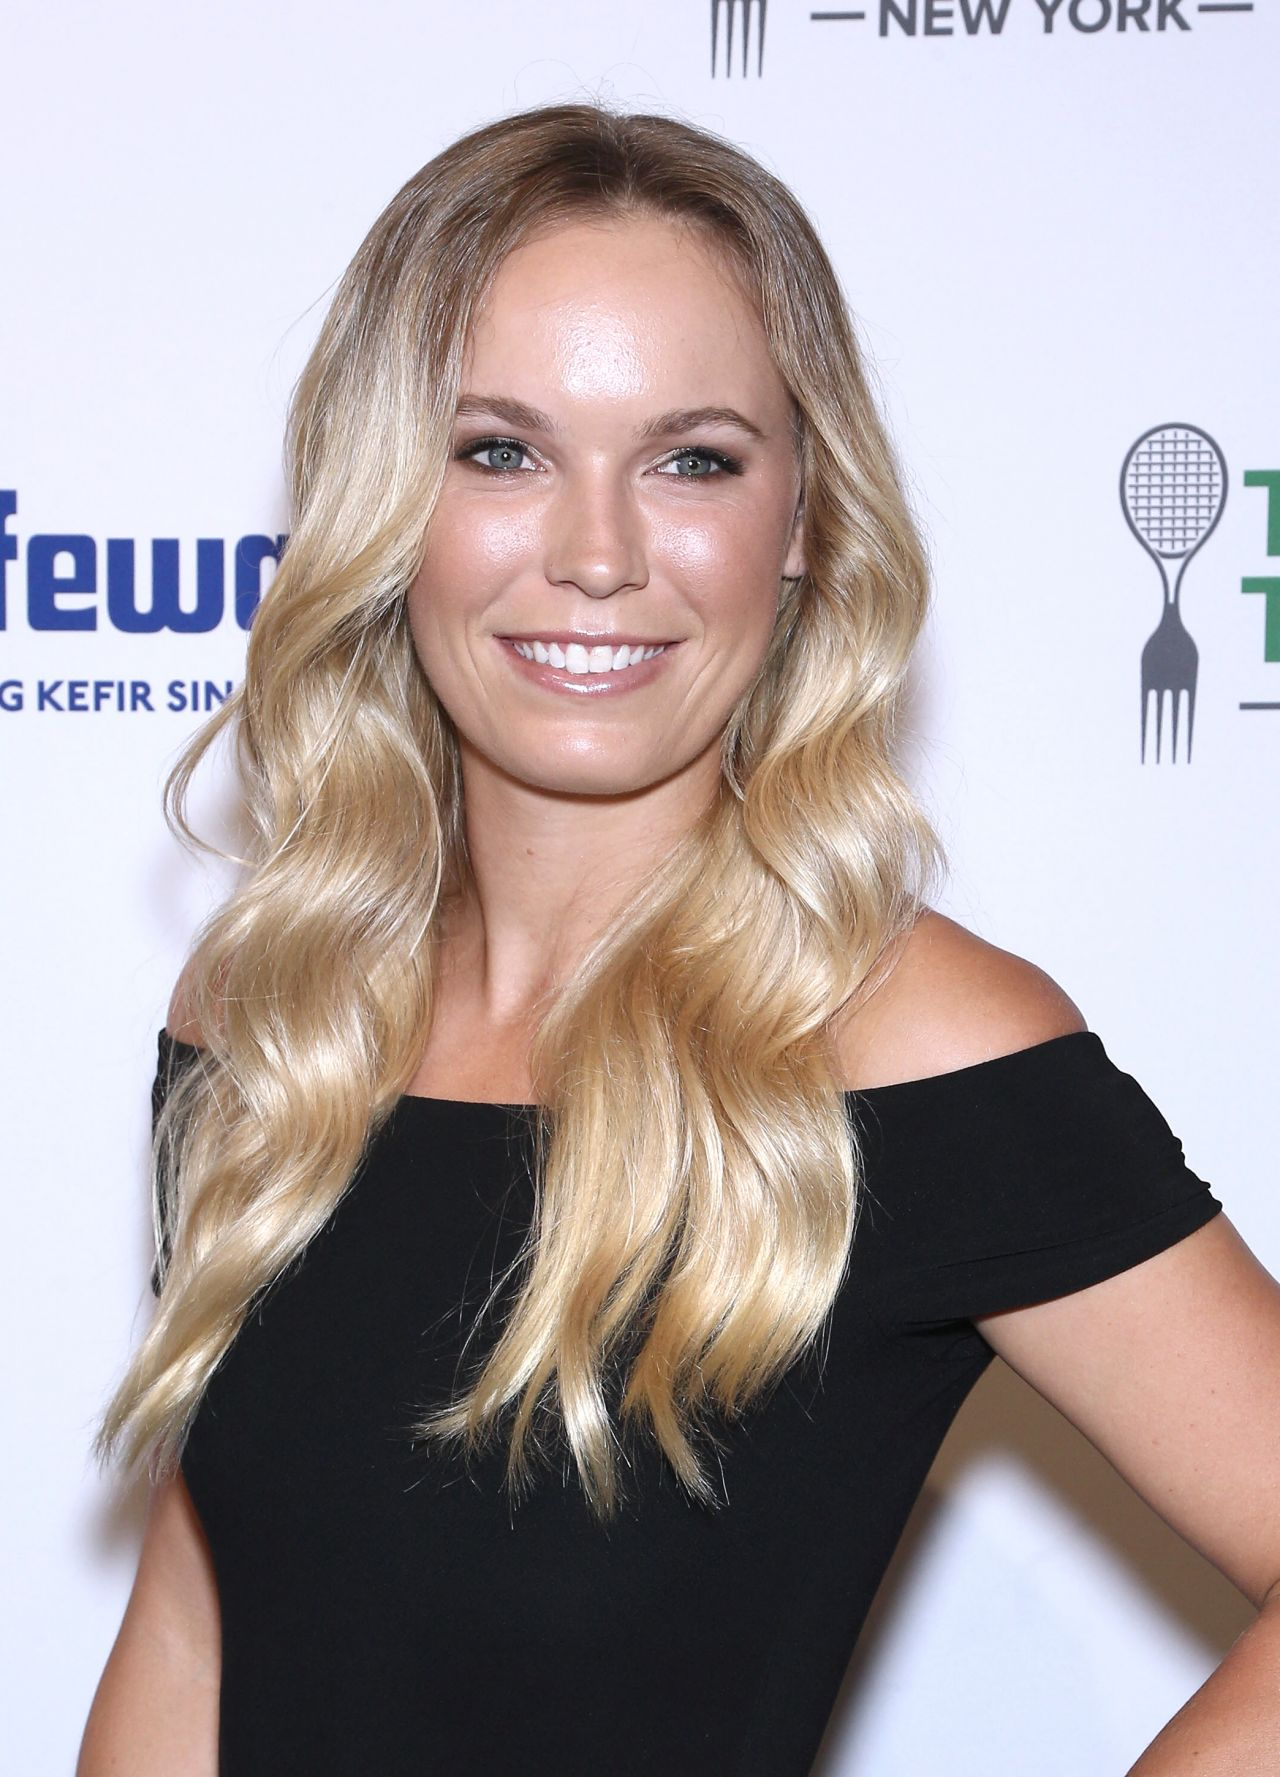 Young Caroline Wozniacki nudes (77 foto and video), Topless, Cleavage, Boobs, braless 2018